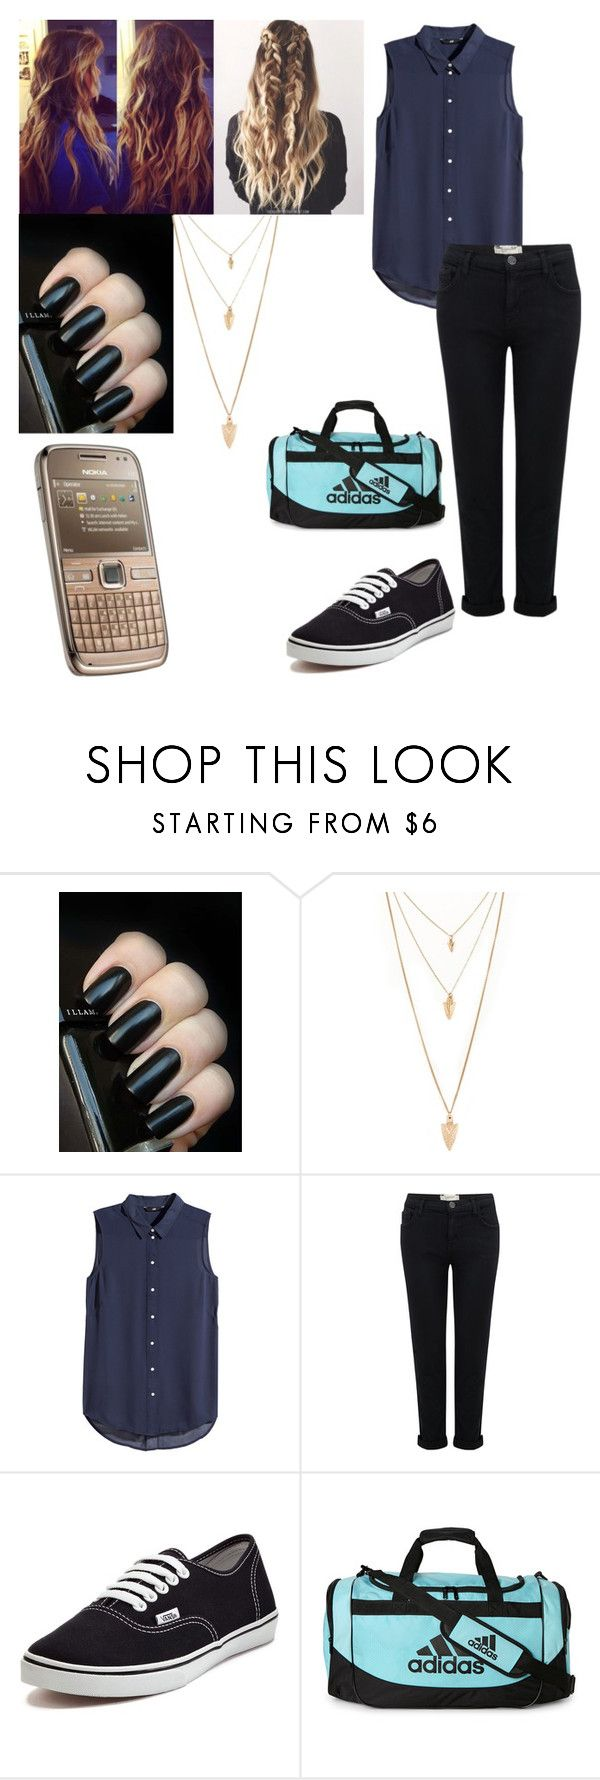 """""""Criminal Minds *Spencer Reid*"""" by ceejxx ❤ liked on Polyvore featuring Forever 21, Nokia, H&M, Current/Elliott, Vans and adidas"""